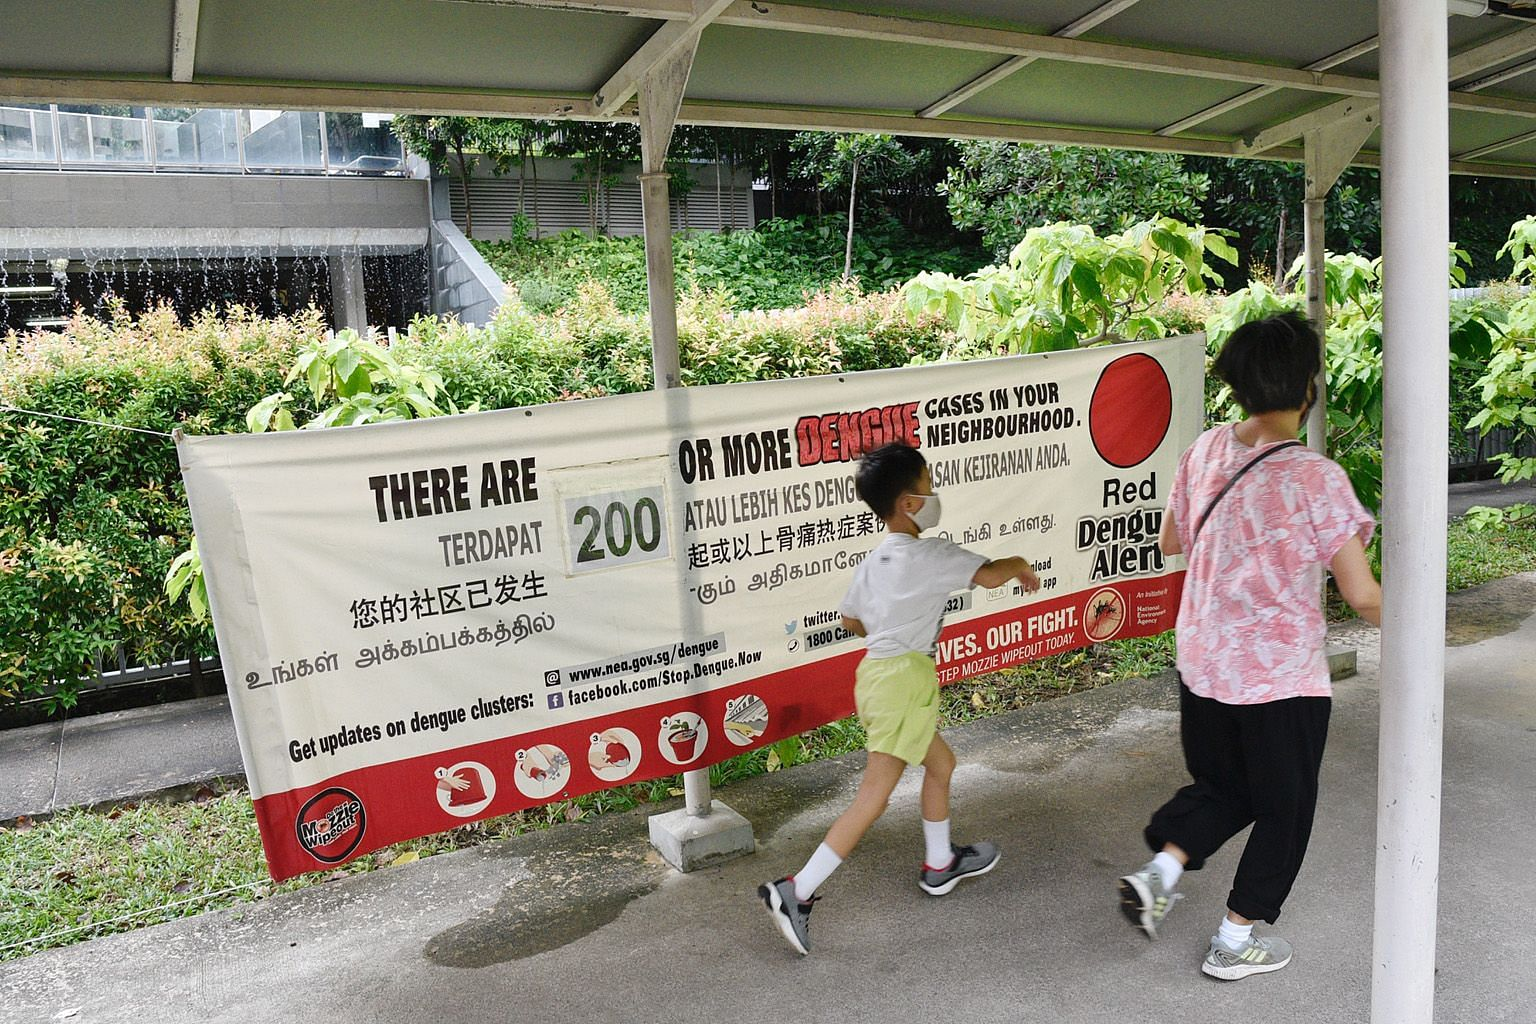 A dengue alert banner in the Woodleigh area. The National Environment Agency said there were 334 active dengue clusters islandwide as at Wednesday, well up on the 205 clusters three weeks ago.